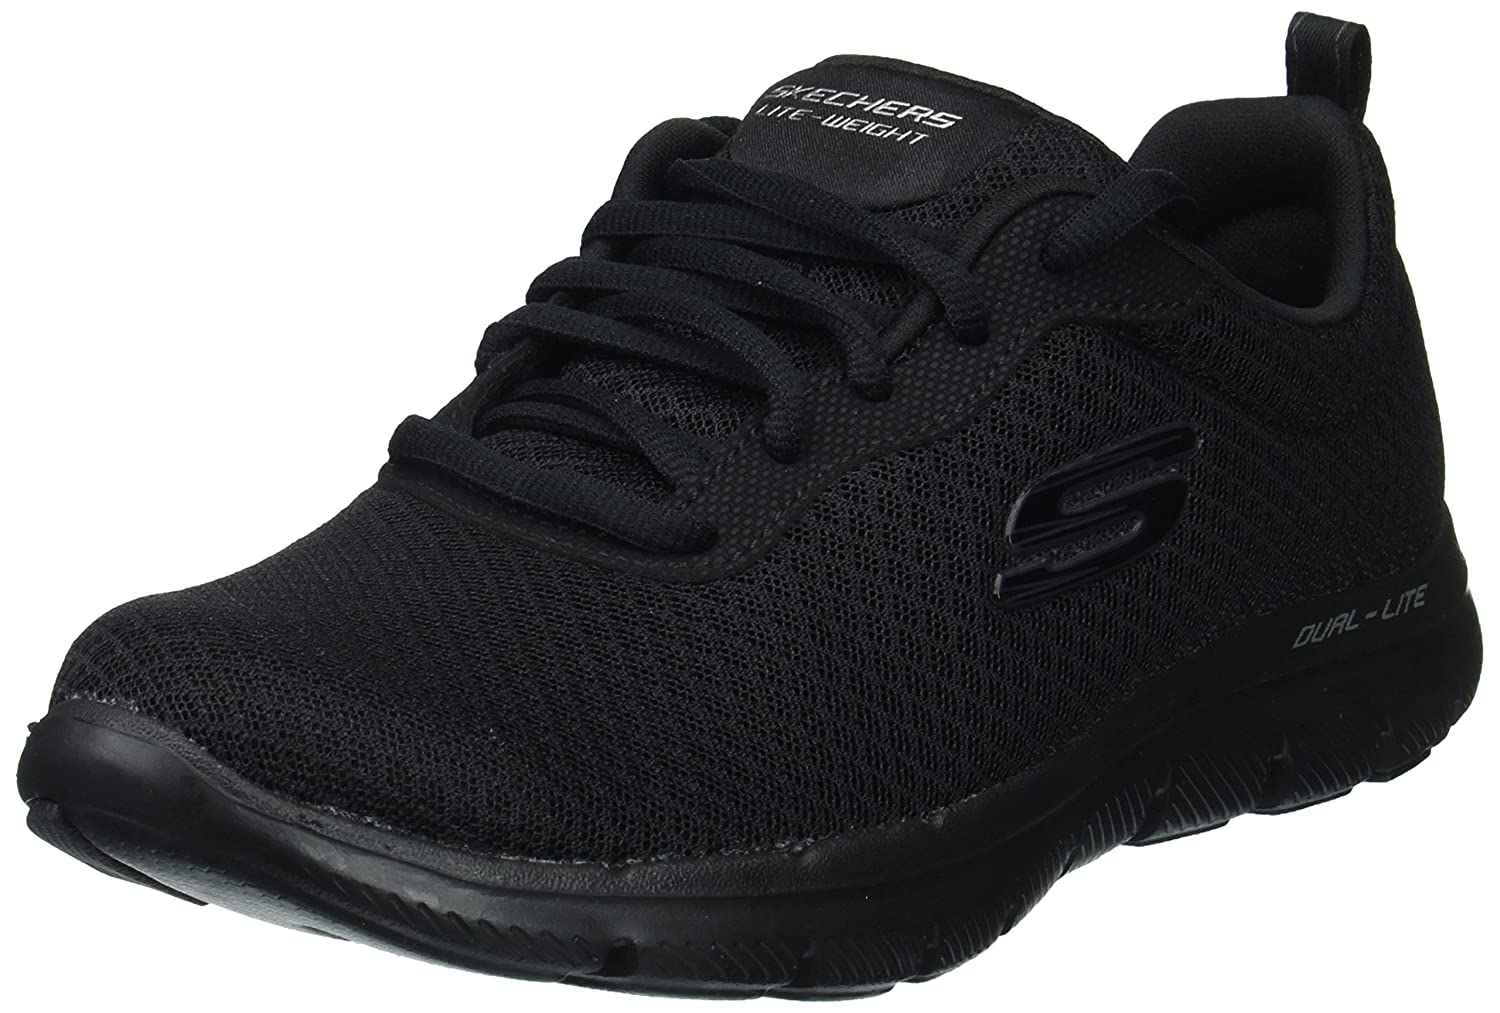 Skechers Women's Flex Appeal2.0-Newsmaker Sneaker B076HG3R2Q 10 W US|Black